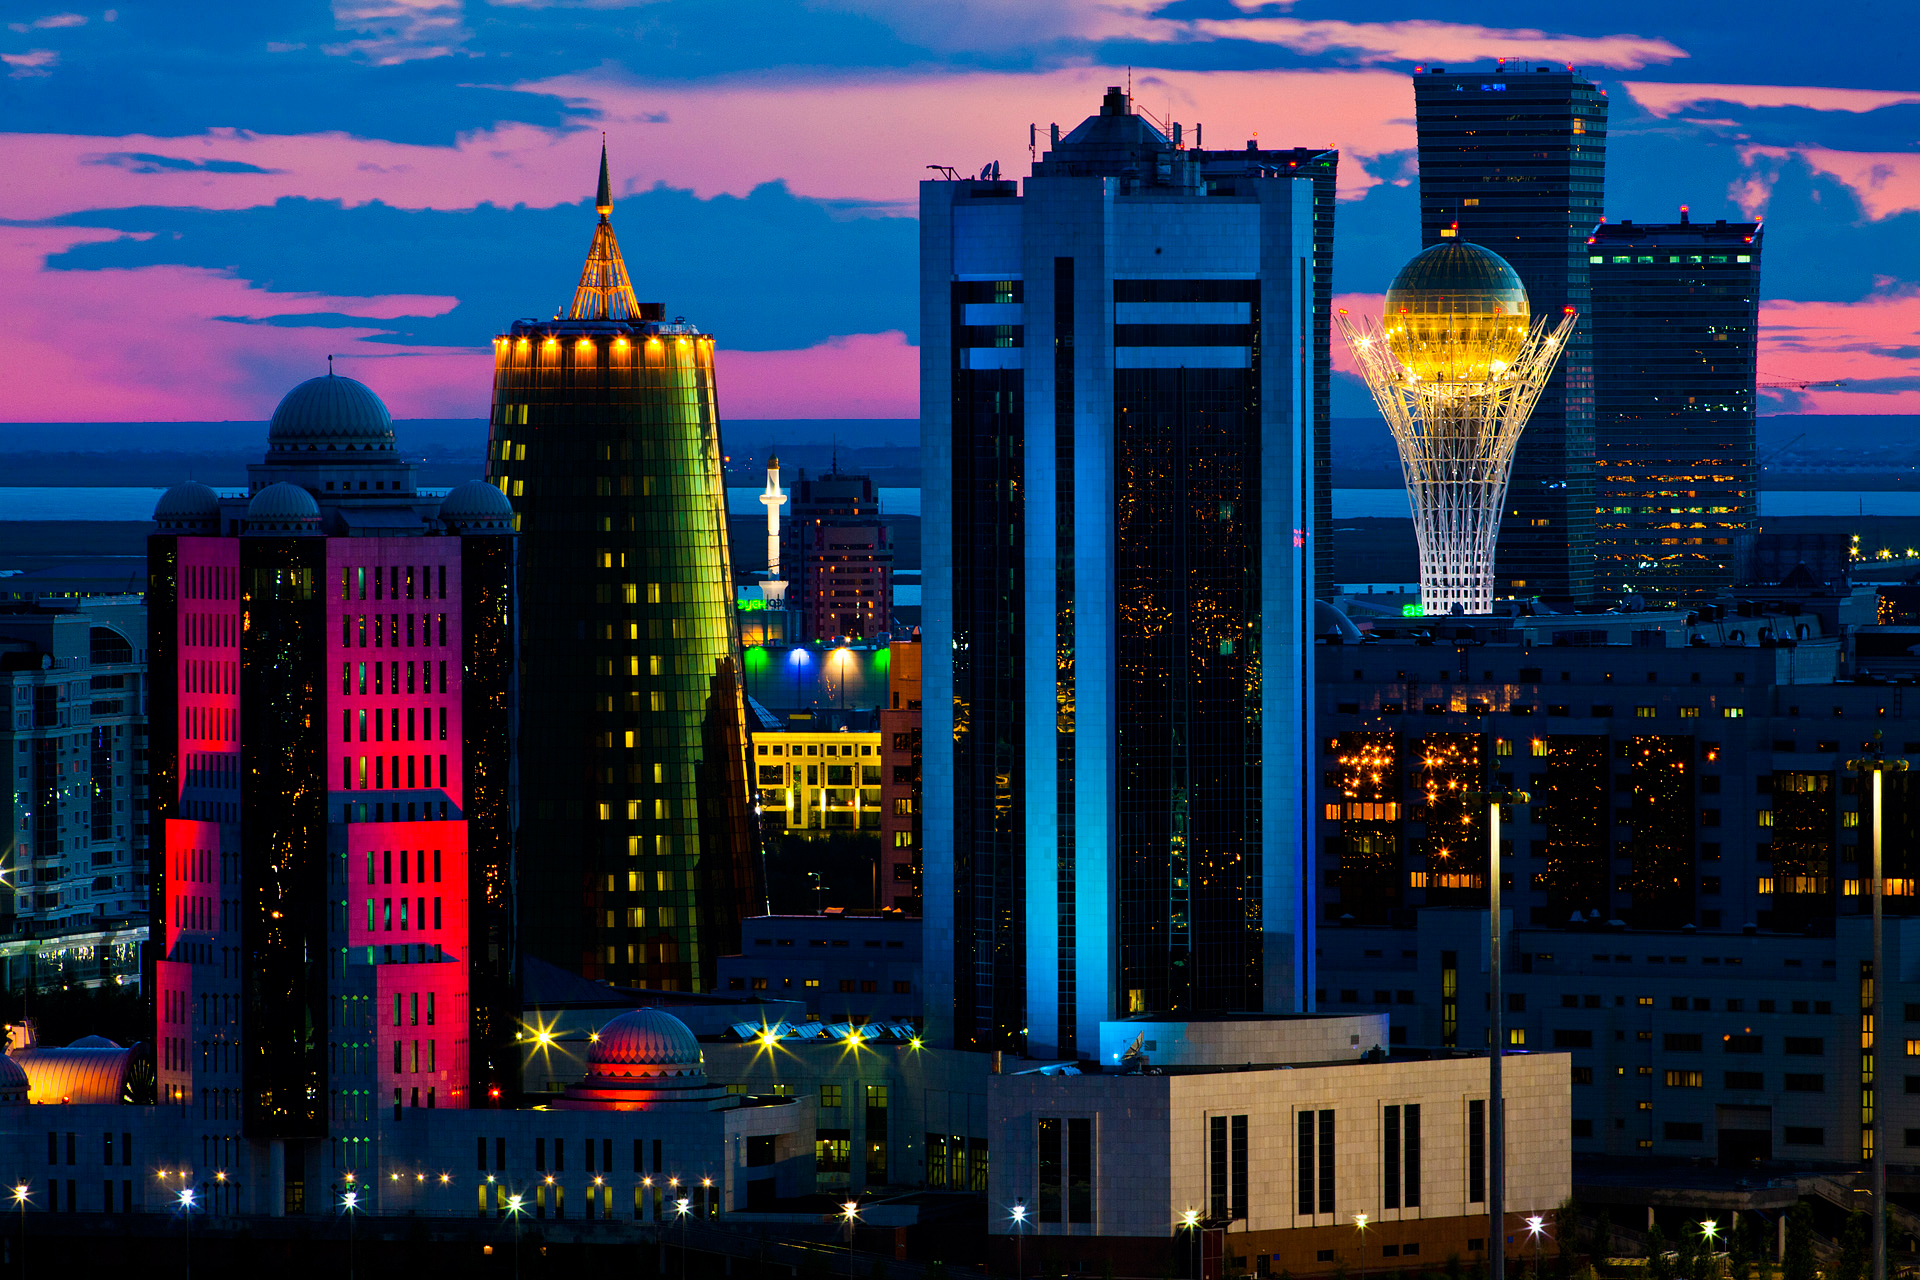 From the rooftop of the Right Bank's HighVill one is afforded a spectacular view of the Left Bank city center with the Parliament Buildings (red and blue), Samruk Kayzna (green), Baiterek, and other high-rises.  Astana, Kazakhstan